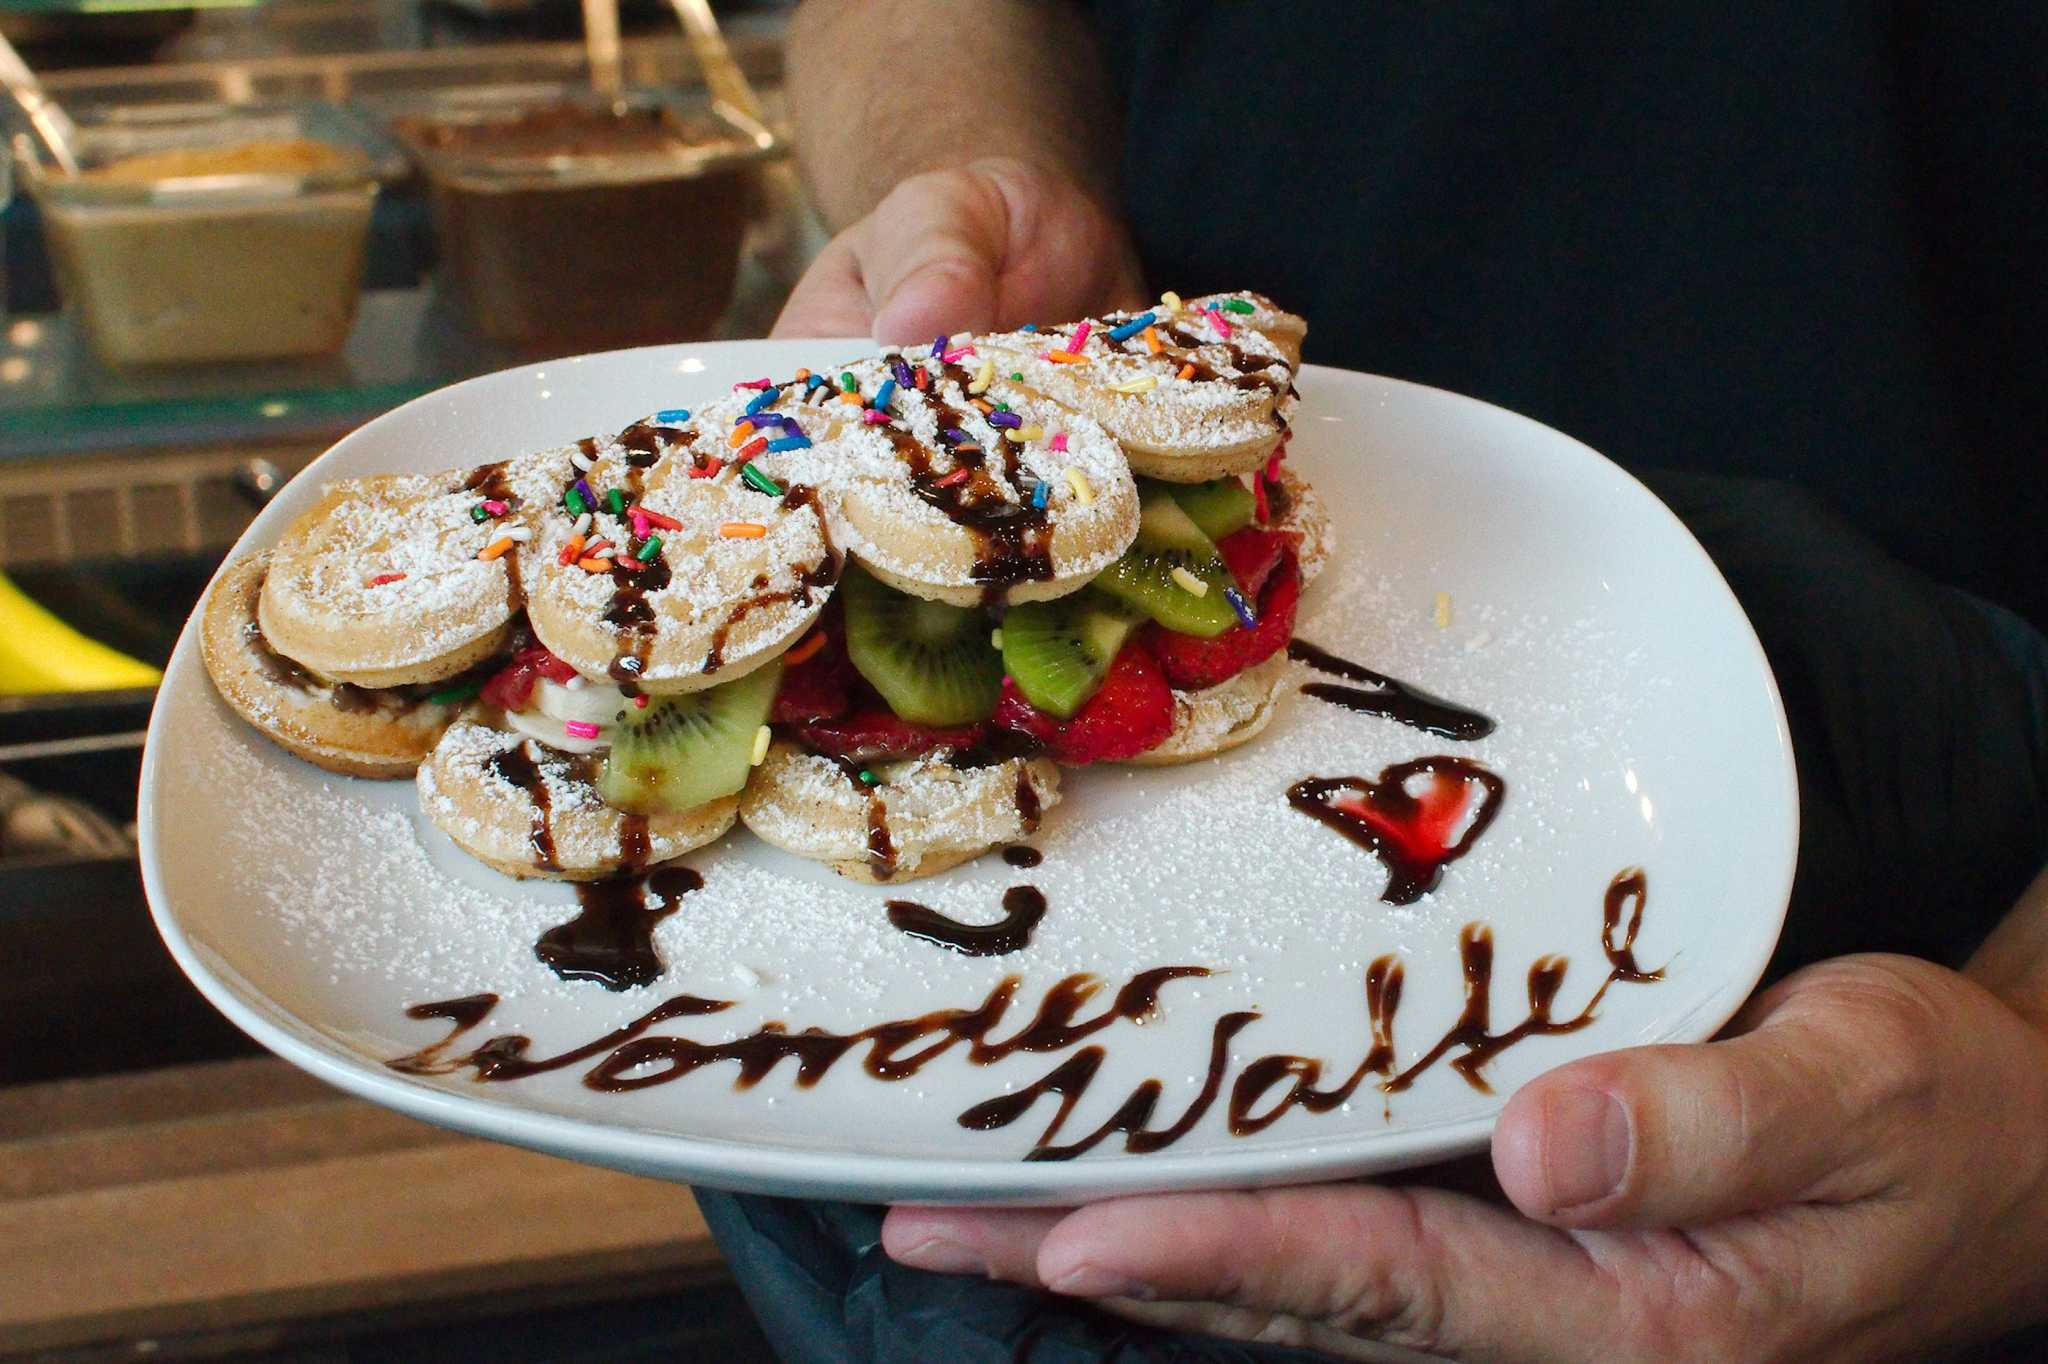 Baybrook Wonderwaffel specializes in sweet grid-marked treats